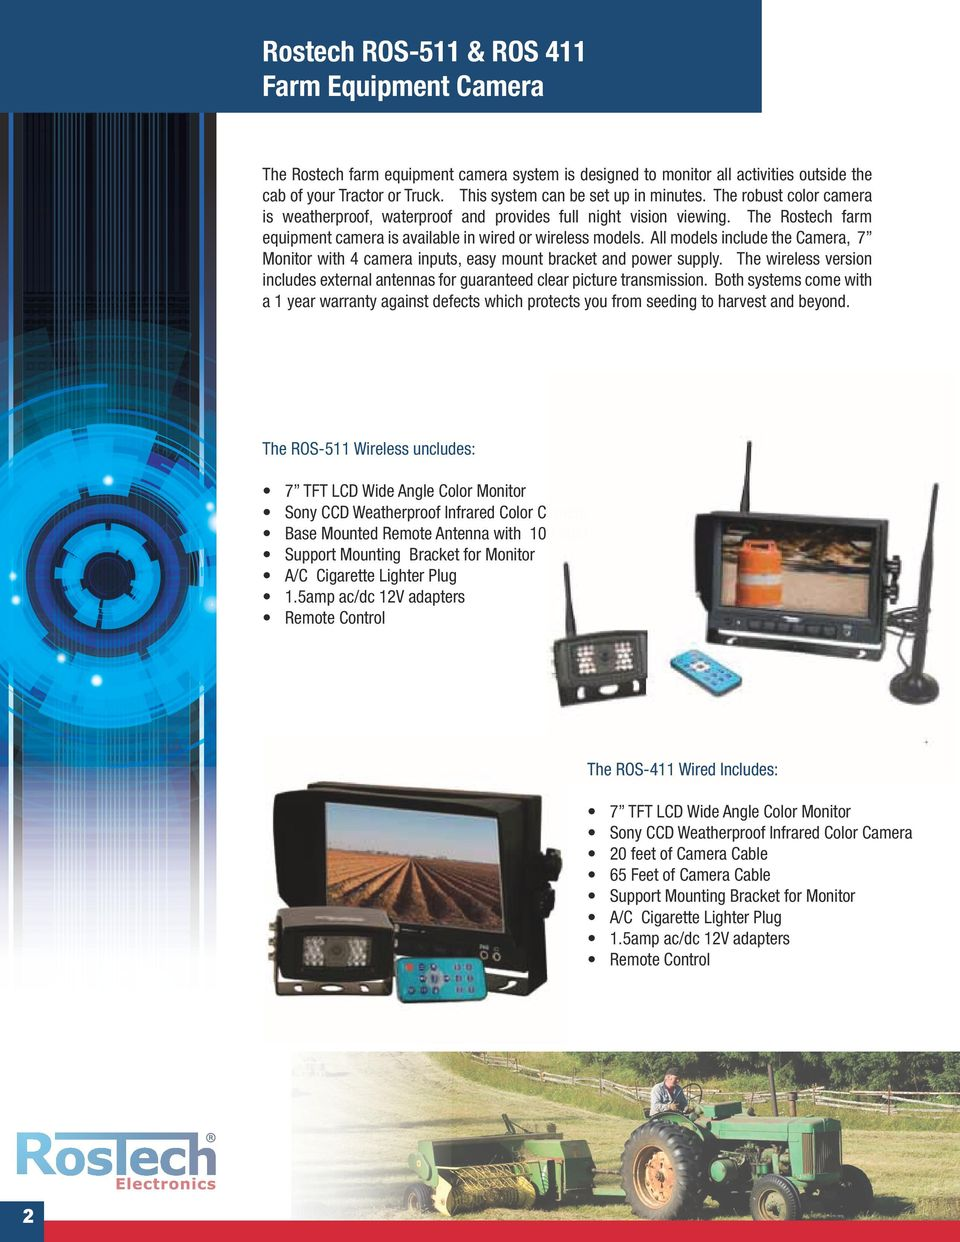 The Rostech farm equipment camera is available in wired or wireless models. All models include the Camera, 7 Monitor with 4 camera inputs, easy mount bracket and power supply.